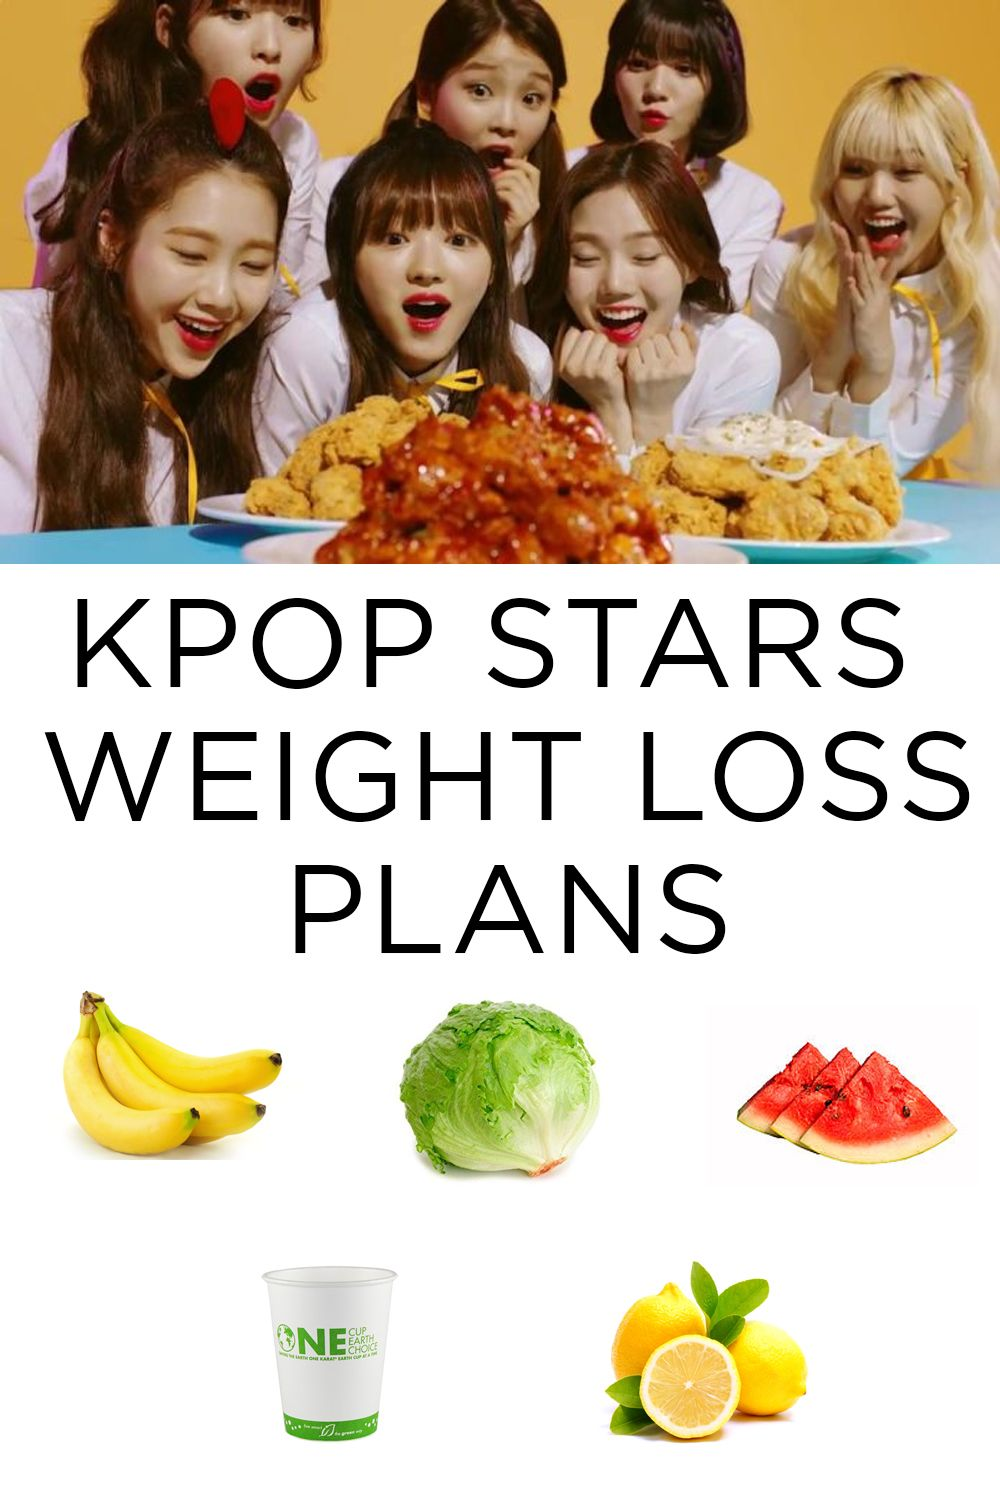 Kpop Idols and their weight loss plans #blog #kpop #diet | A  KPOP